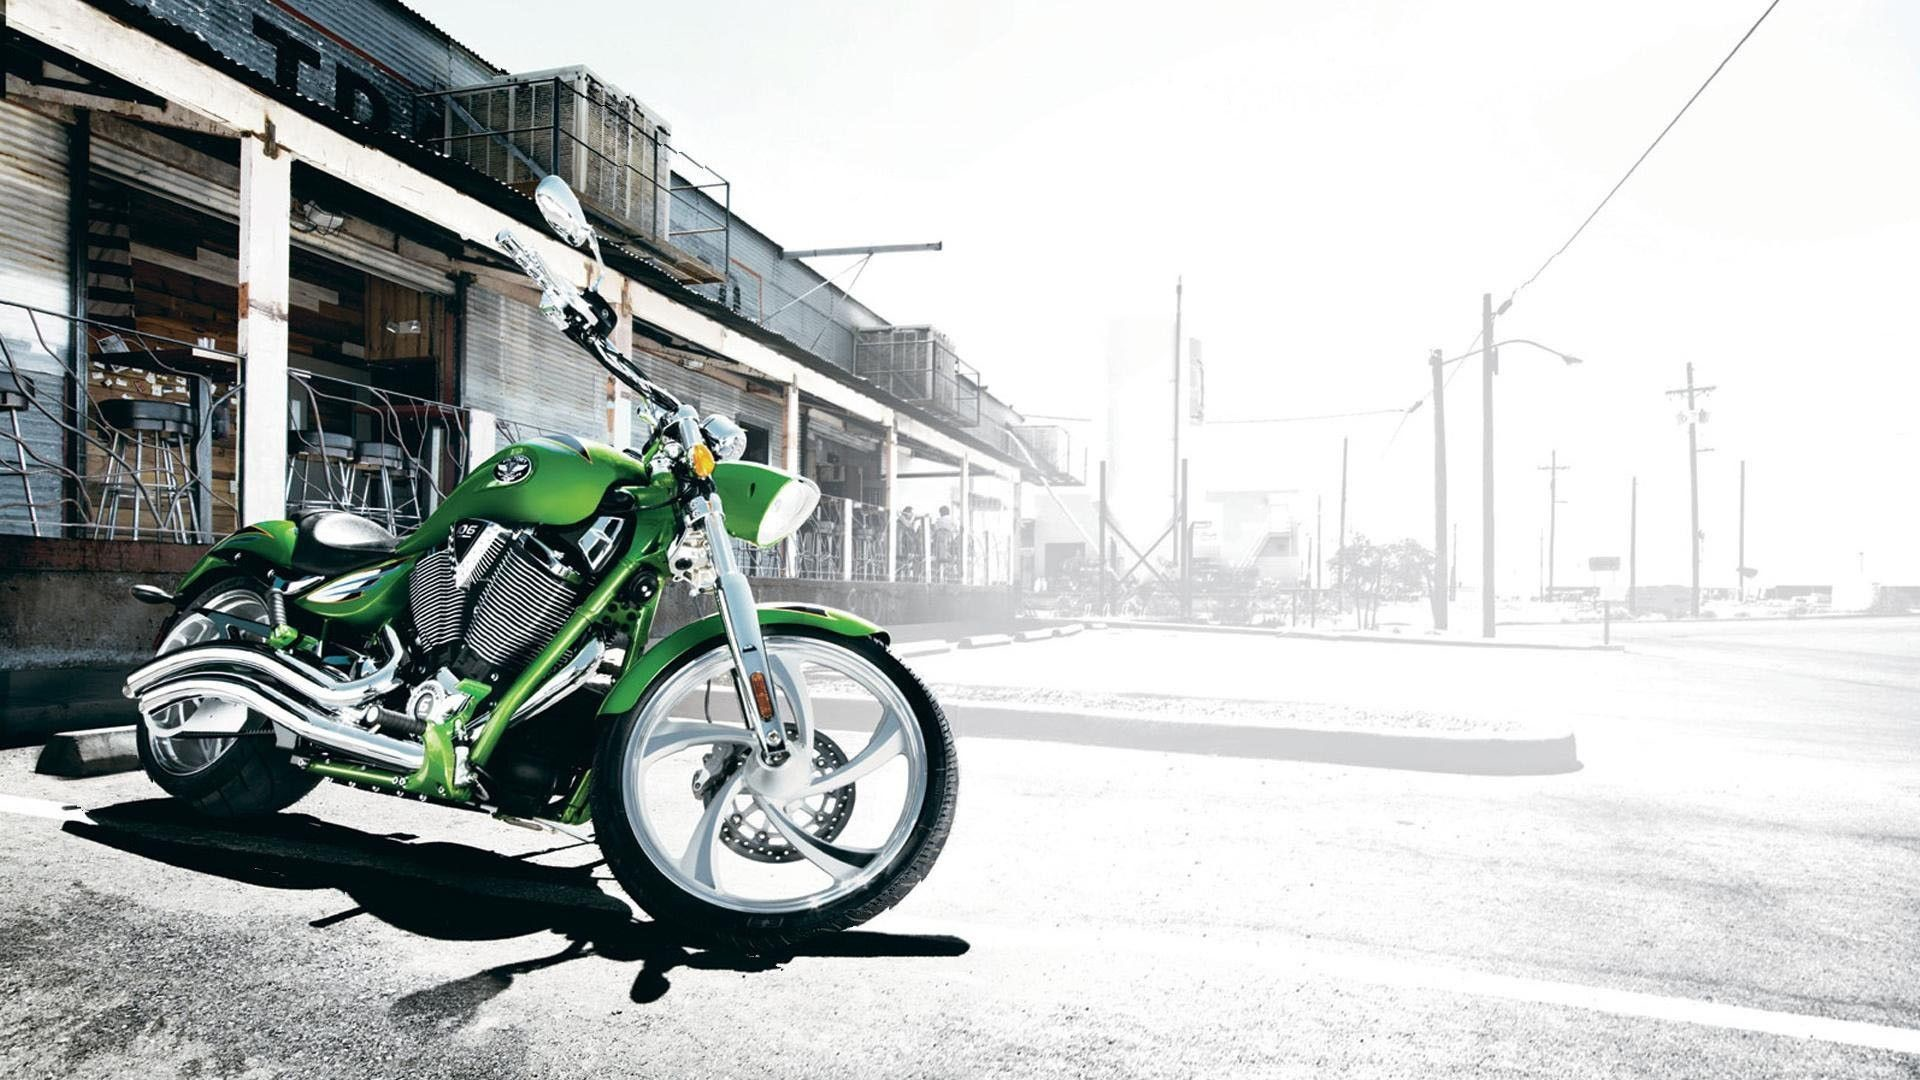 Res: 1920x1080, Vintage Motorcycle Wallpapers High Quality Resolution